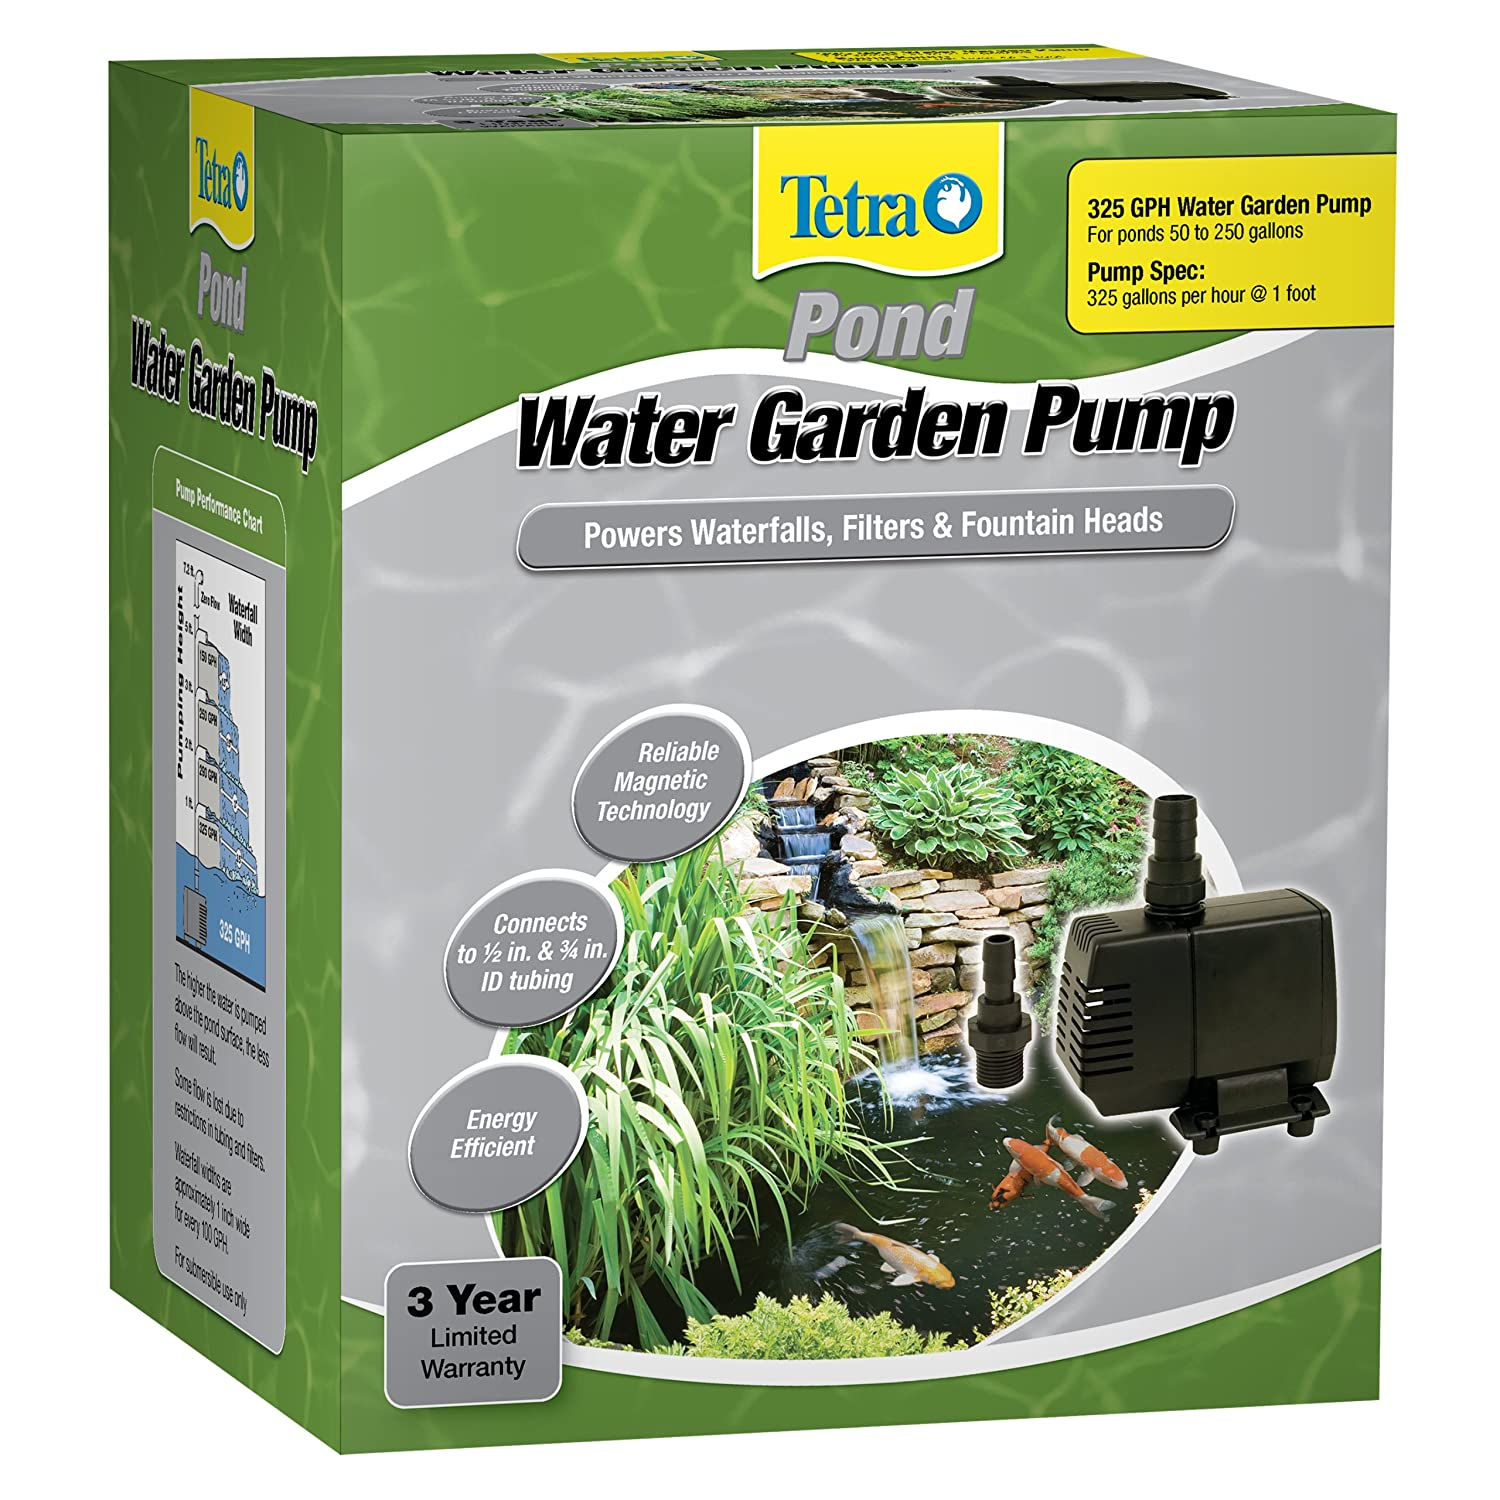 Amazoncom TetraPond Water Garden Pump 325 GPH Pet Supplies